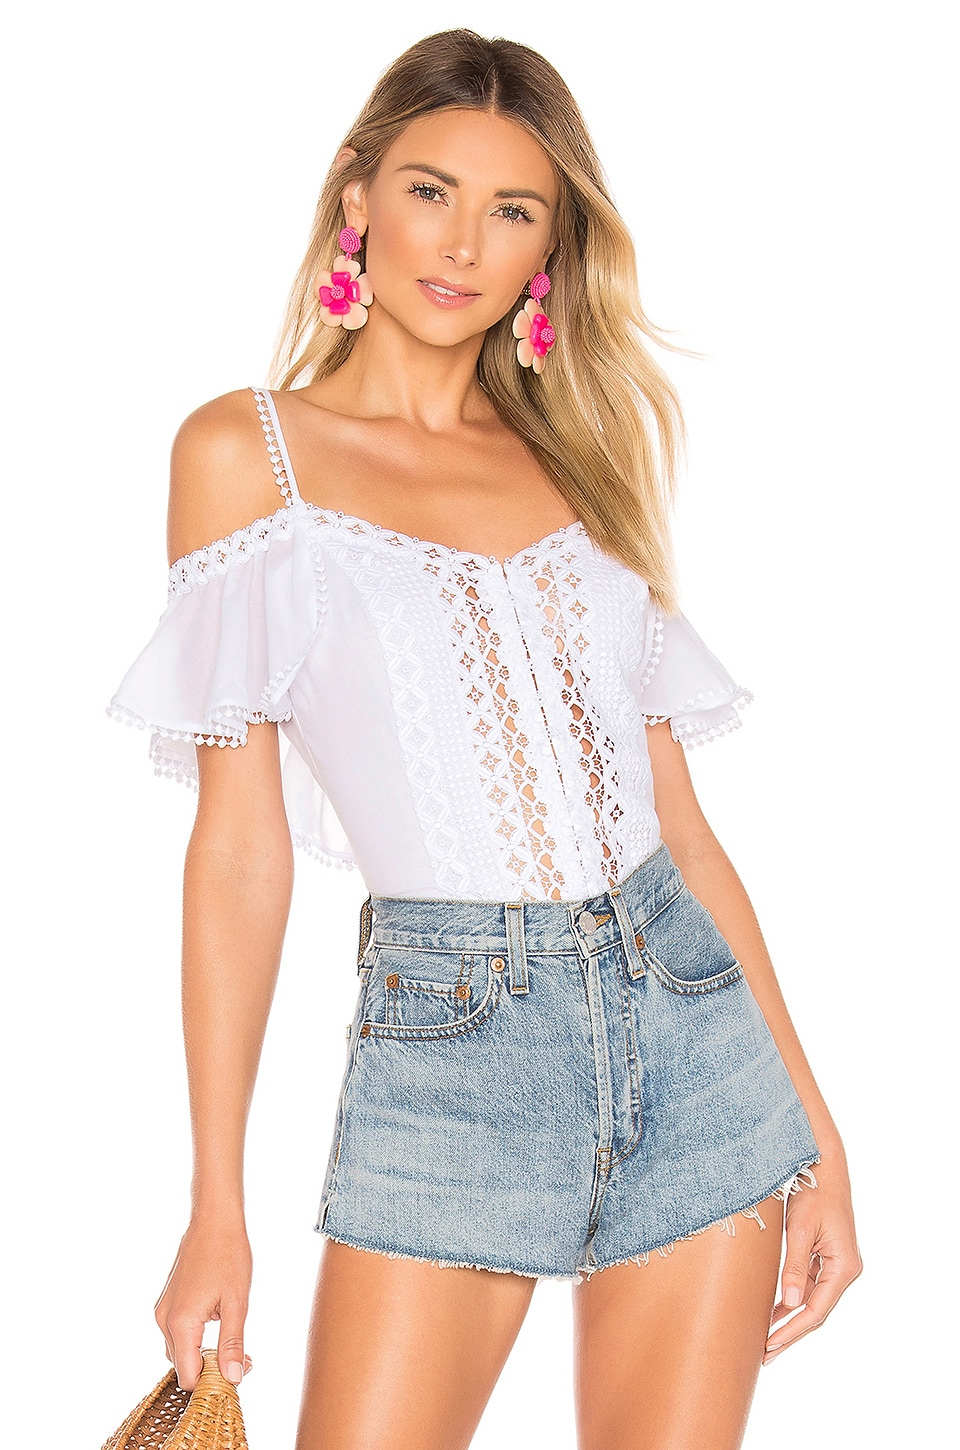 Charo Ruiz Ibiza Emi Top in White